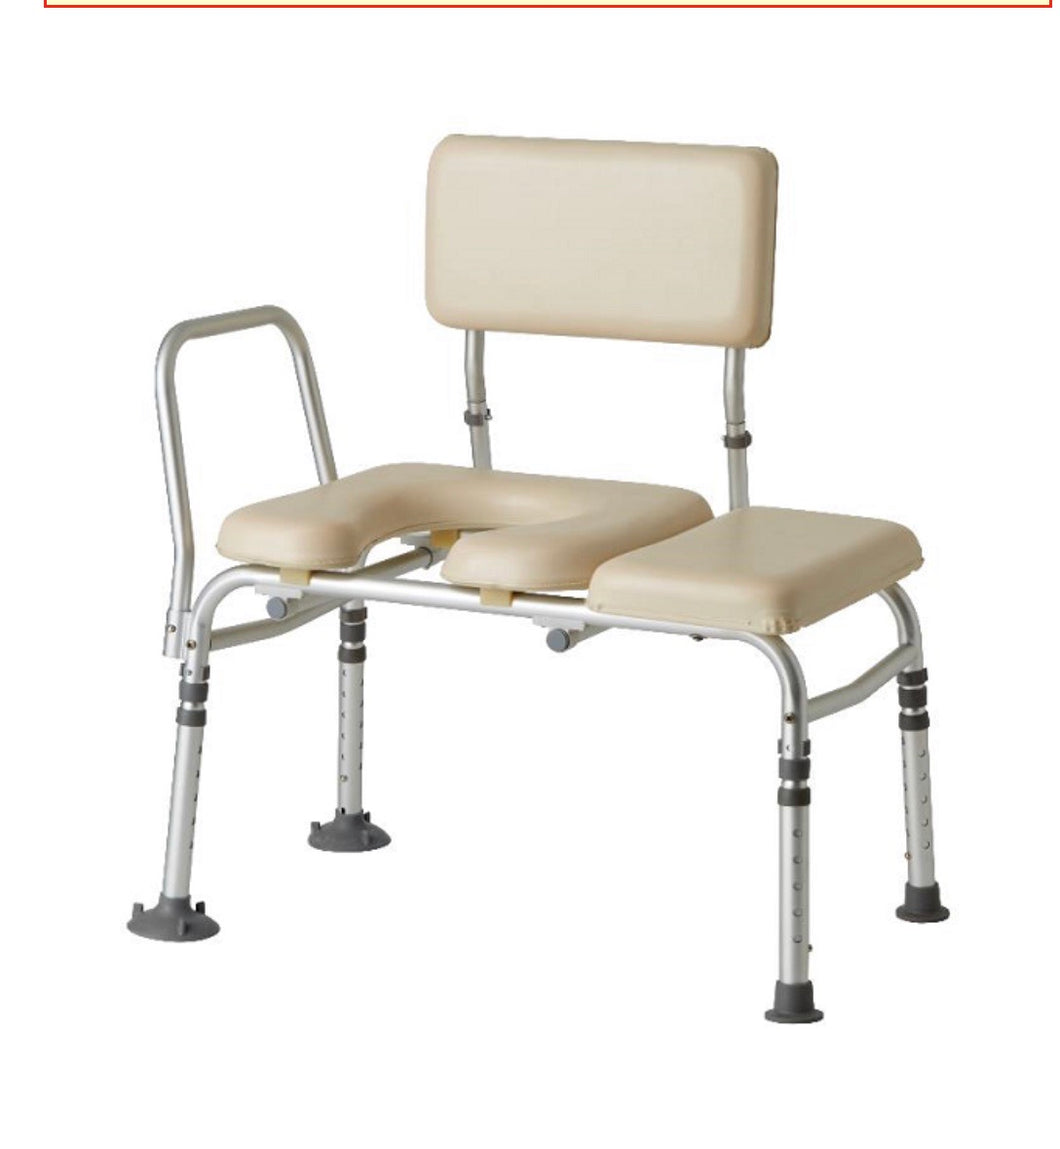 Guardian Padded Transfer Bench with Commode Opening by Medline